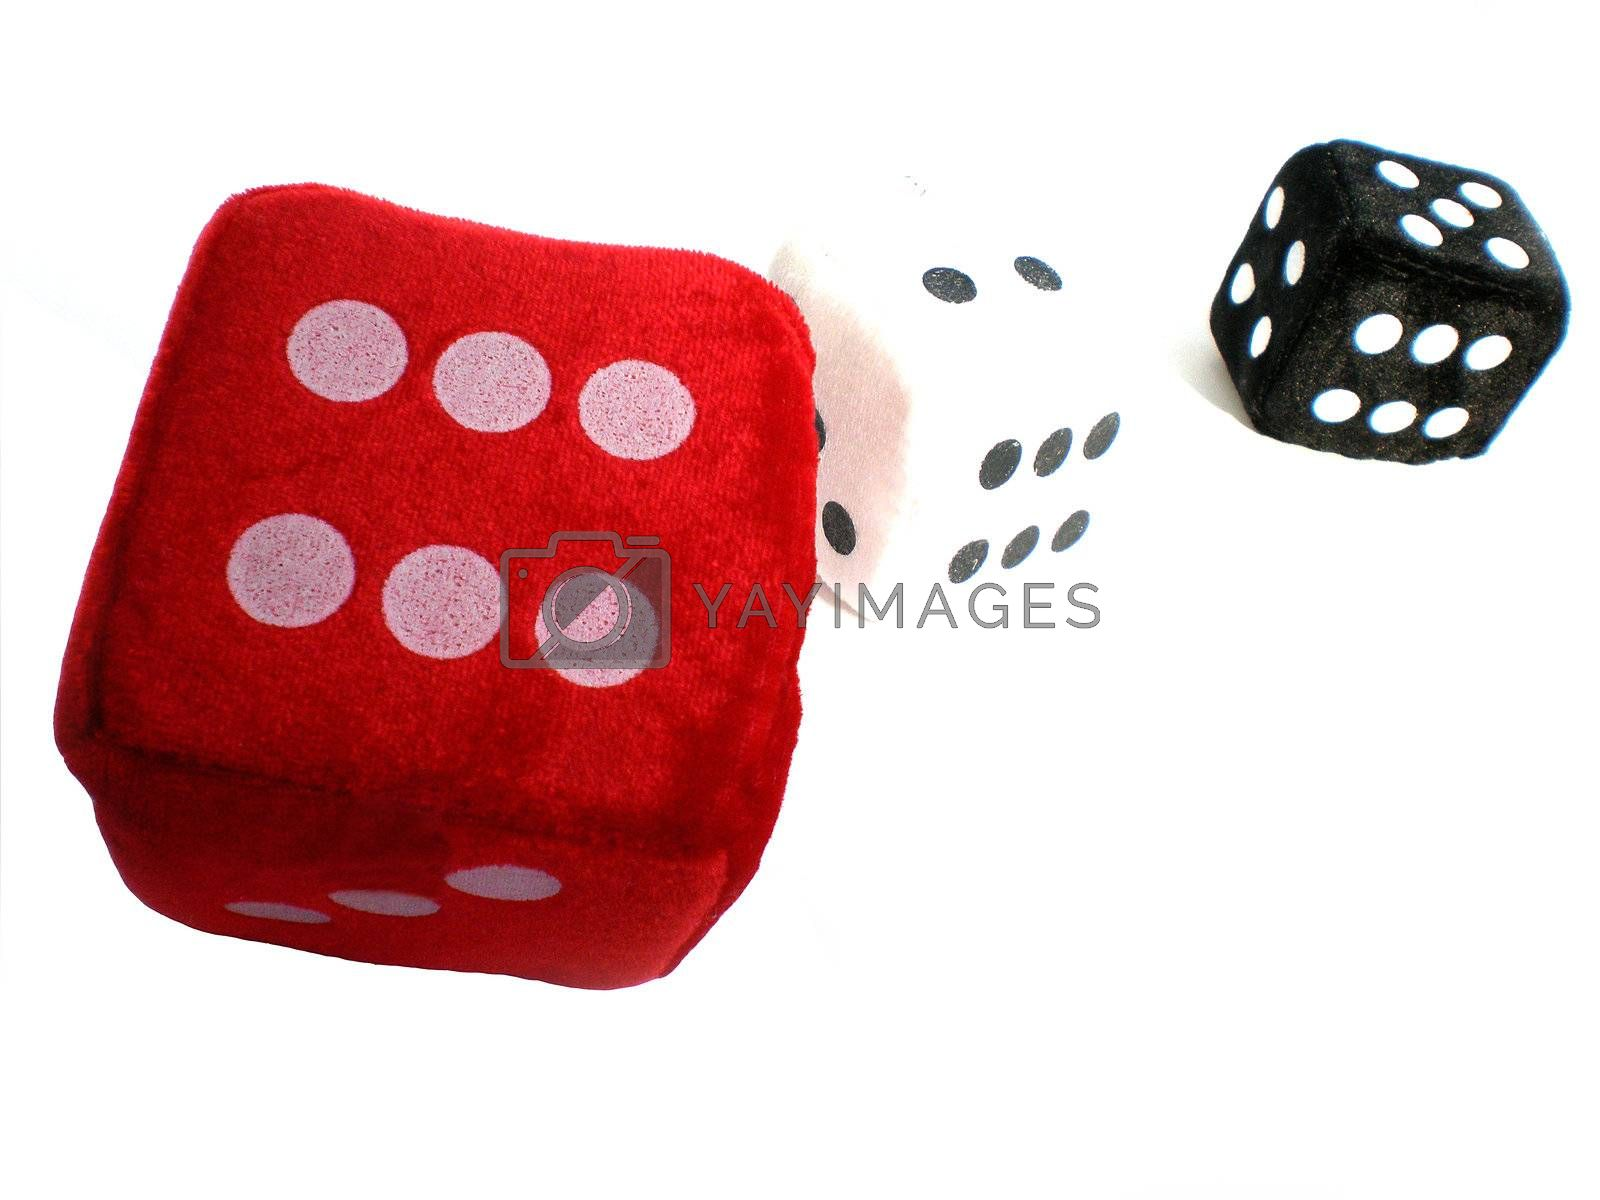 red, white and black dice isolated on white background